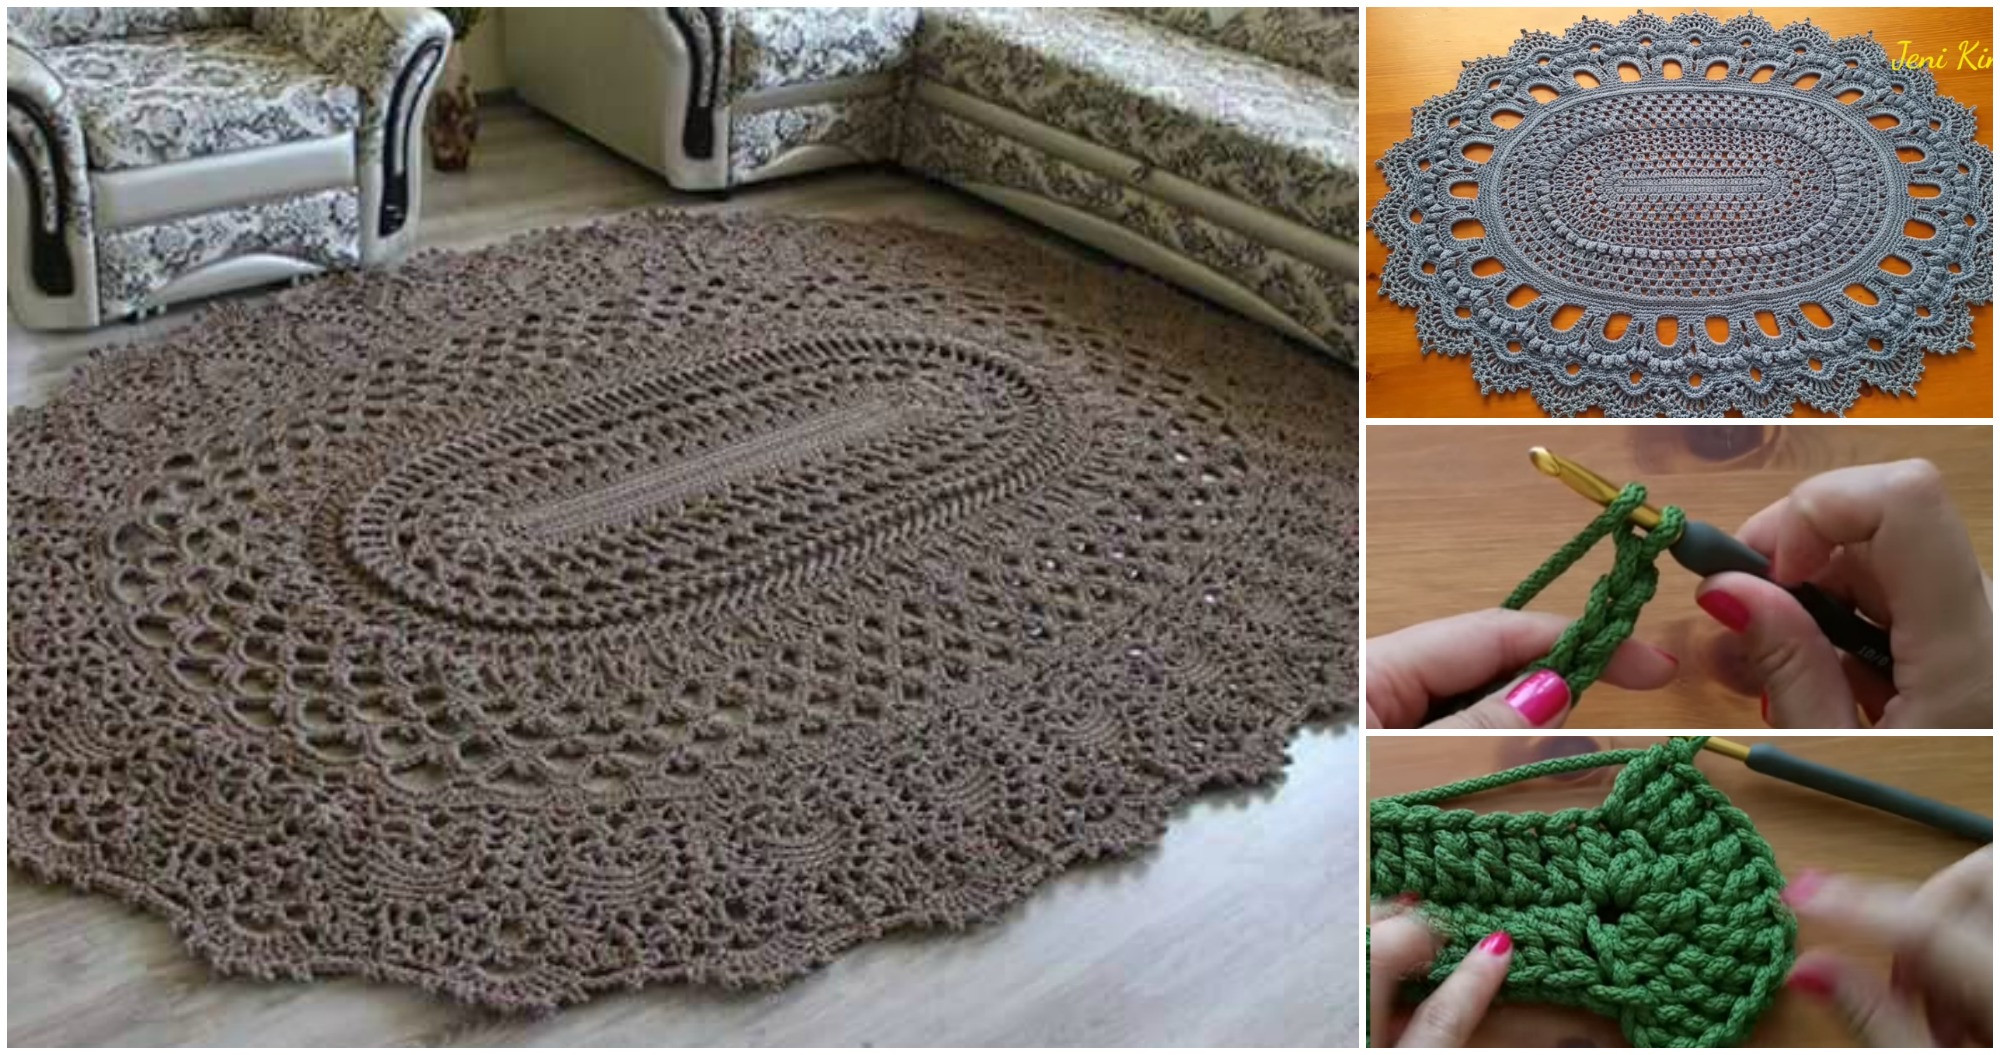 Crochet Rug Patterns Awesome Oval Rug Video Tutorial Pretty Ideas Of Amazing 41 Images Crochet Rug Patterns